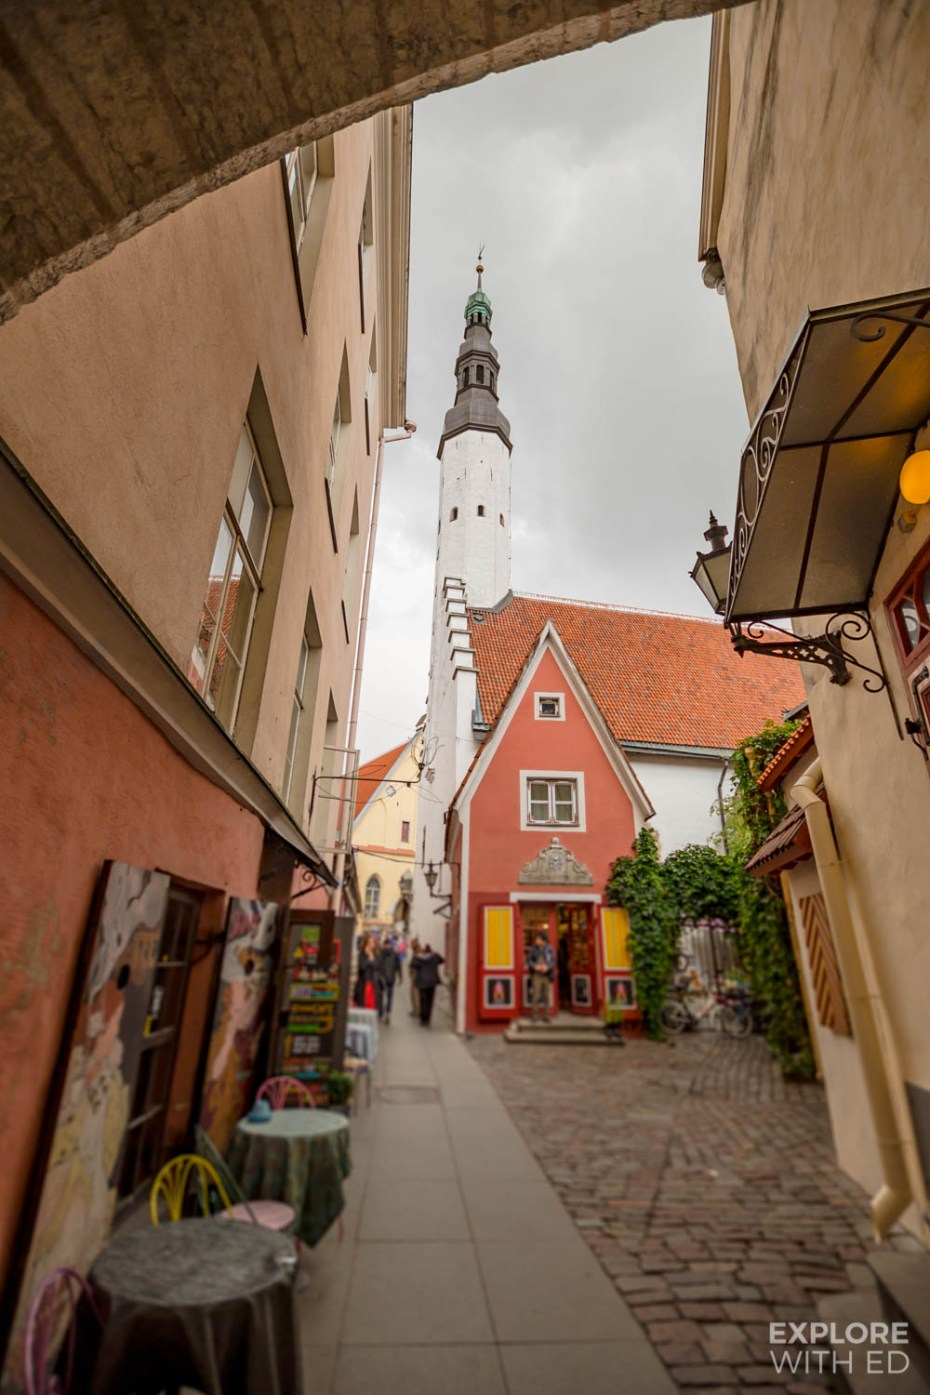 Narrow side streets are one of the most charming places in Tallinn for photography lovers